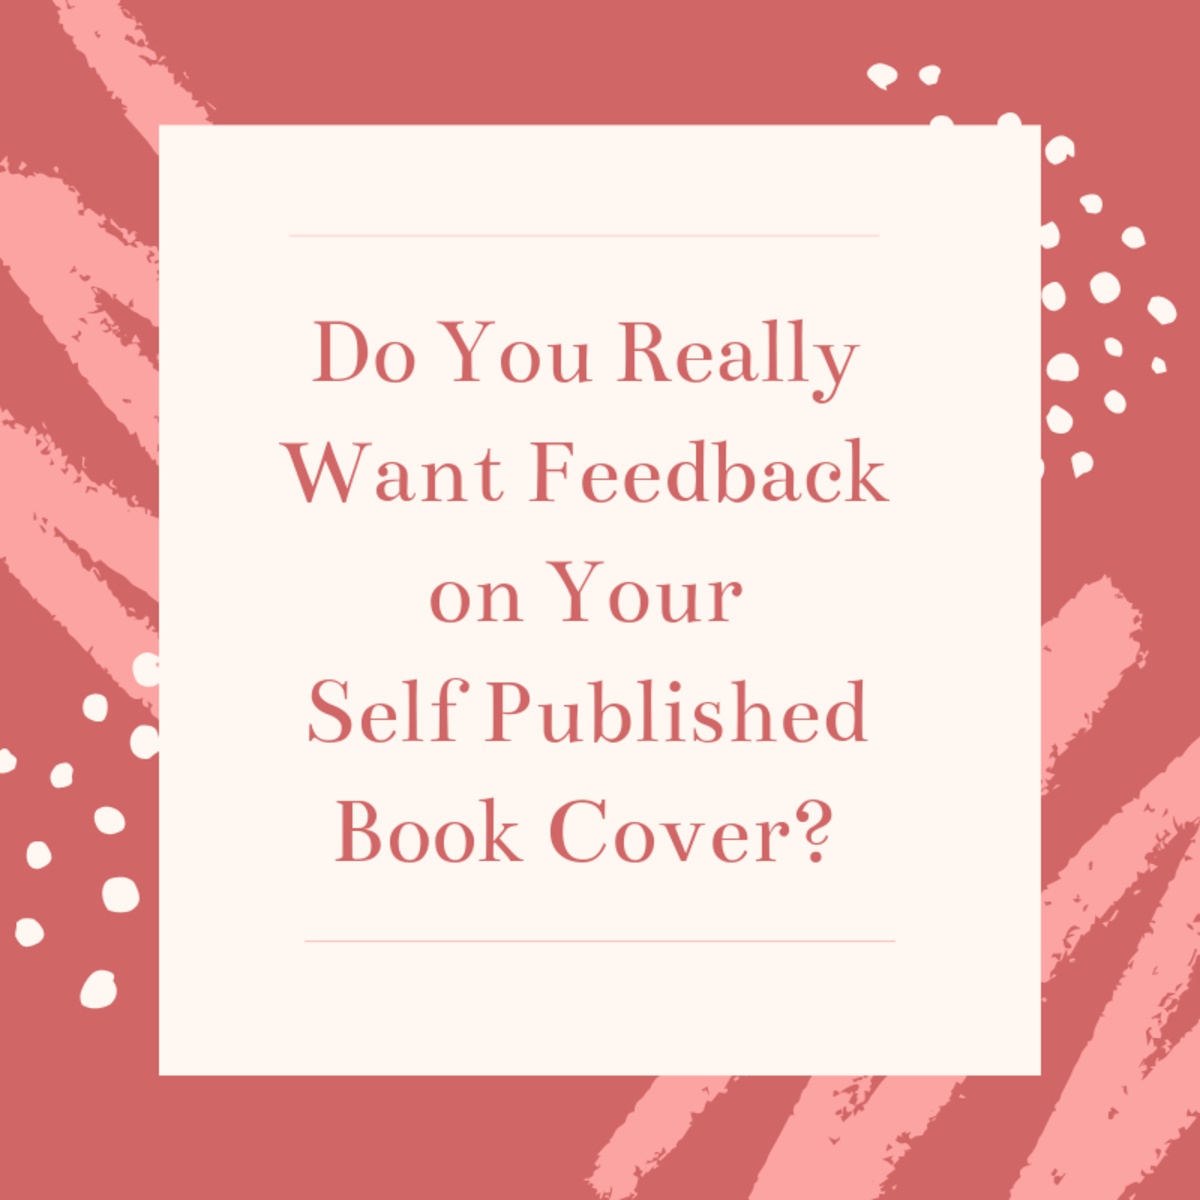 Do You Really Want Feedback on Your Self Published Book Cover?